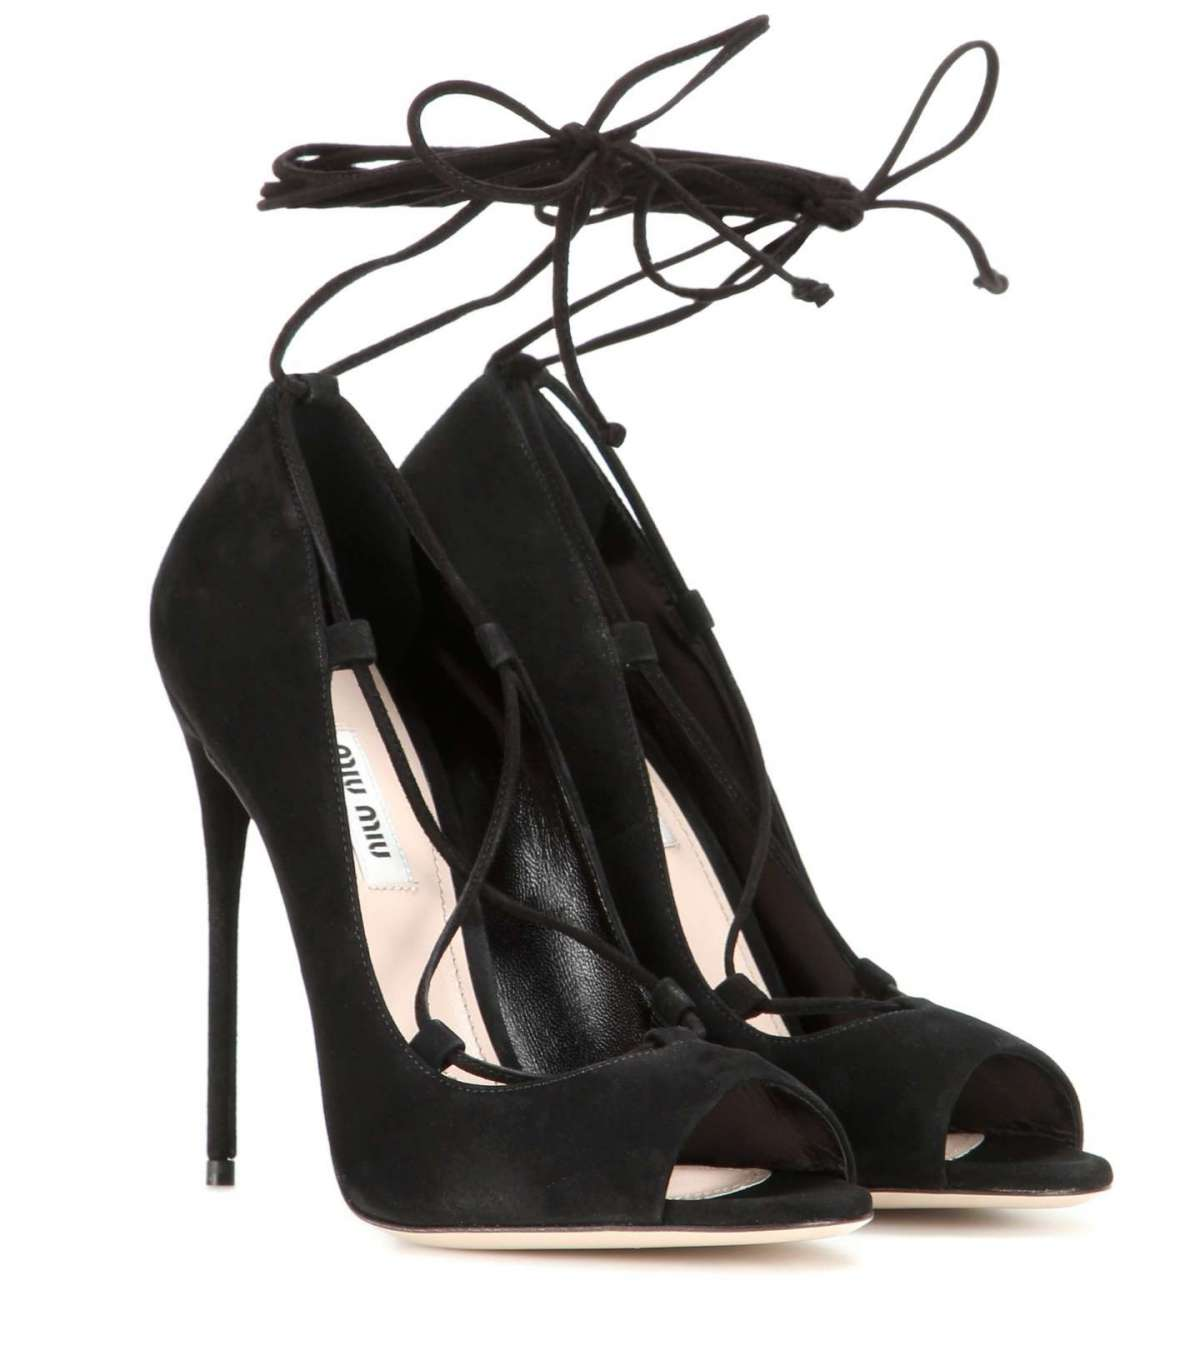 Peep-toe lace up Miu Miu